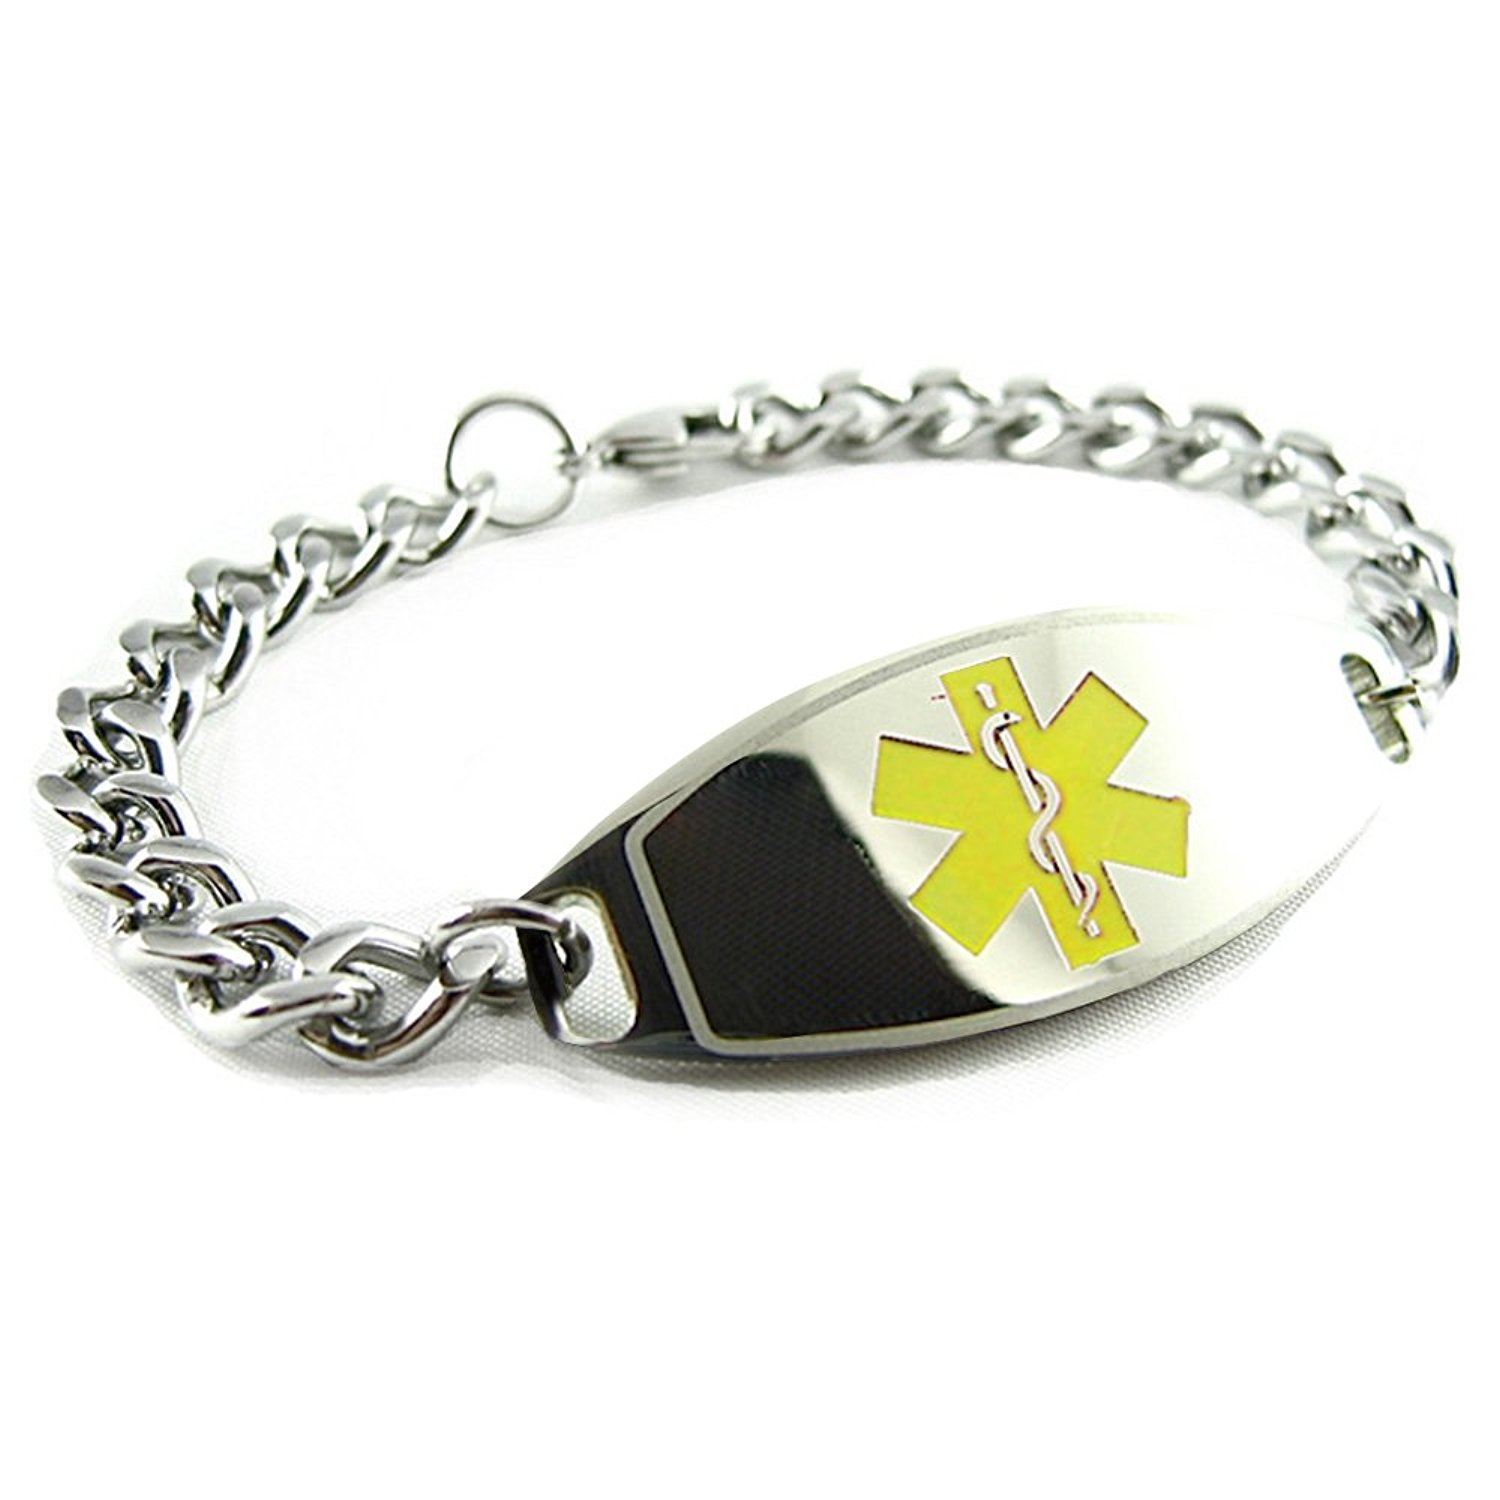 Get Quotations My Ideny Doctor Pre Engraved Customized Peanut Allergy Alert Medical Bracelet Yellow